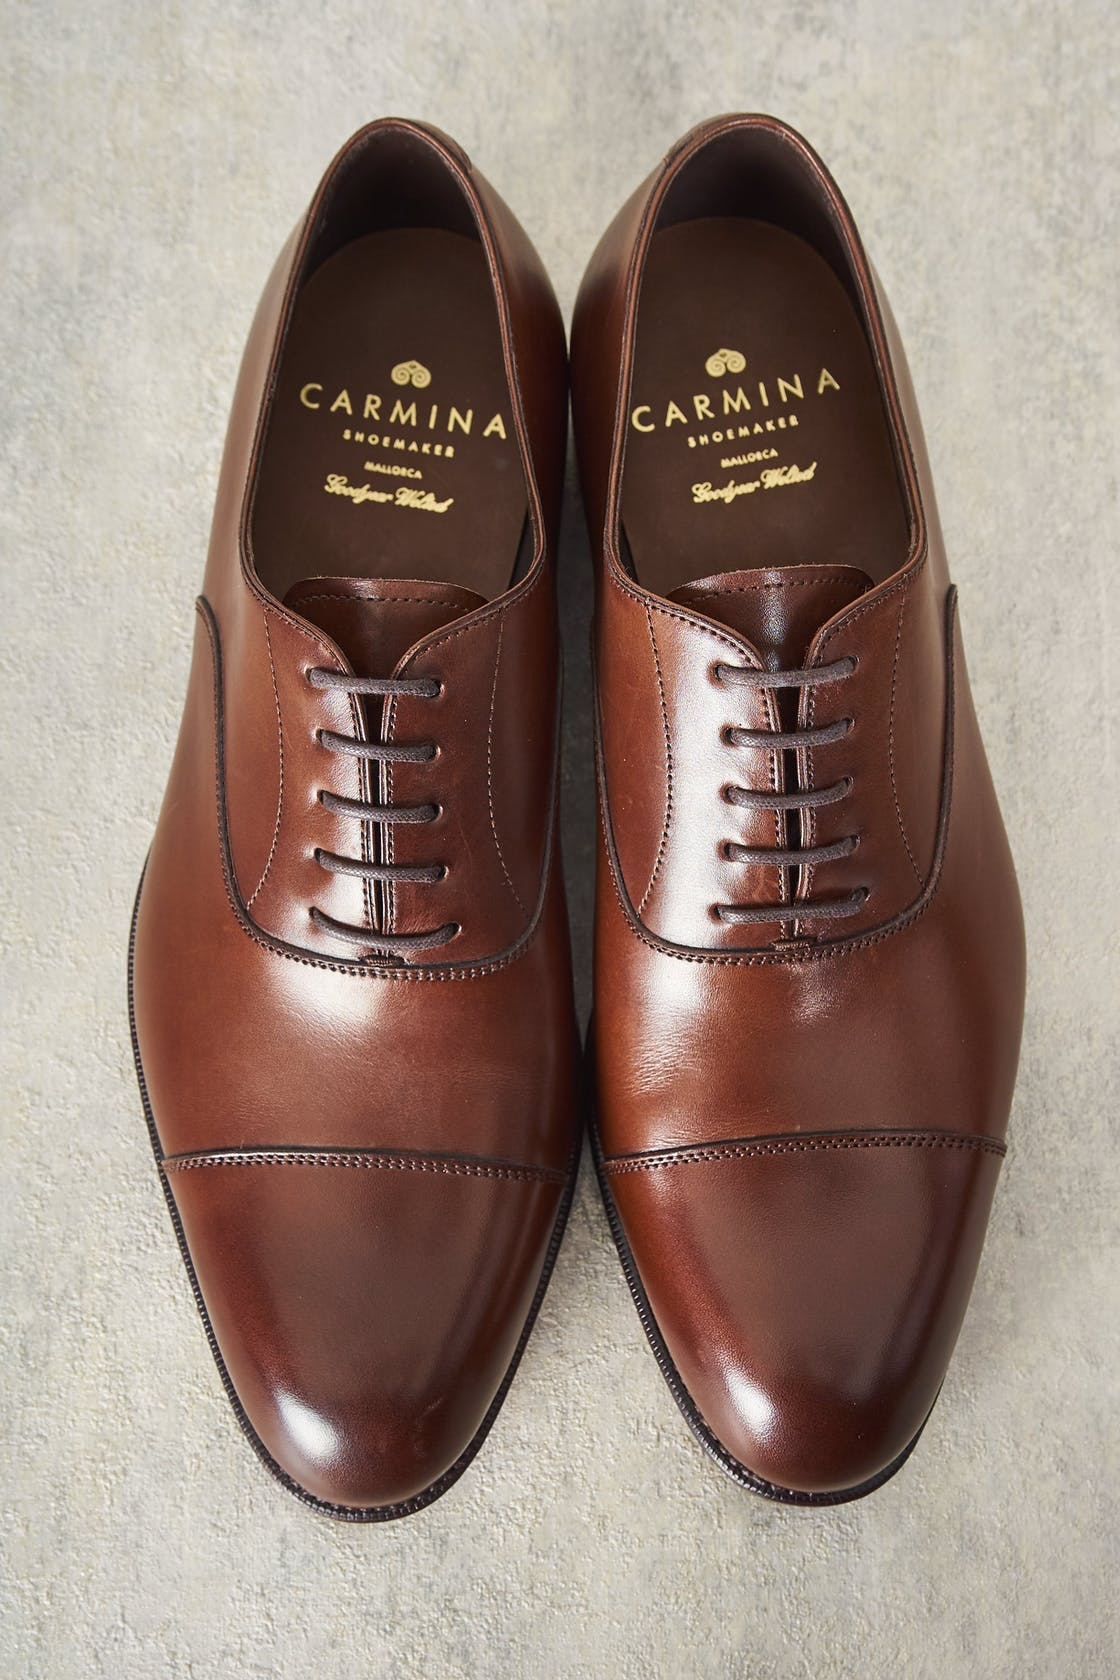 Carmina Robert 732 Brown Calf Oxford Simple Captoe Shoes